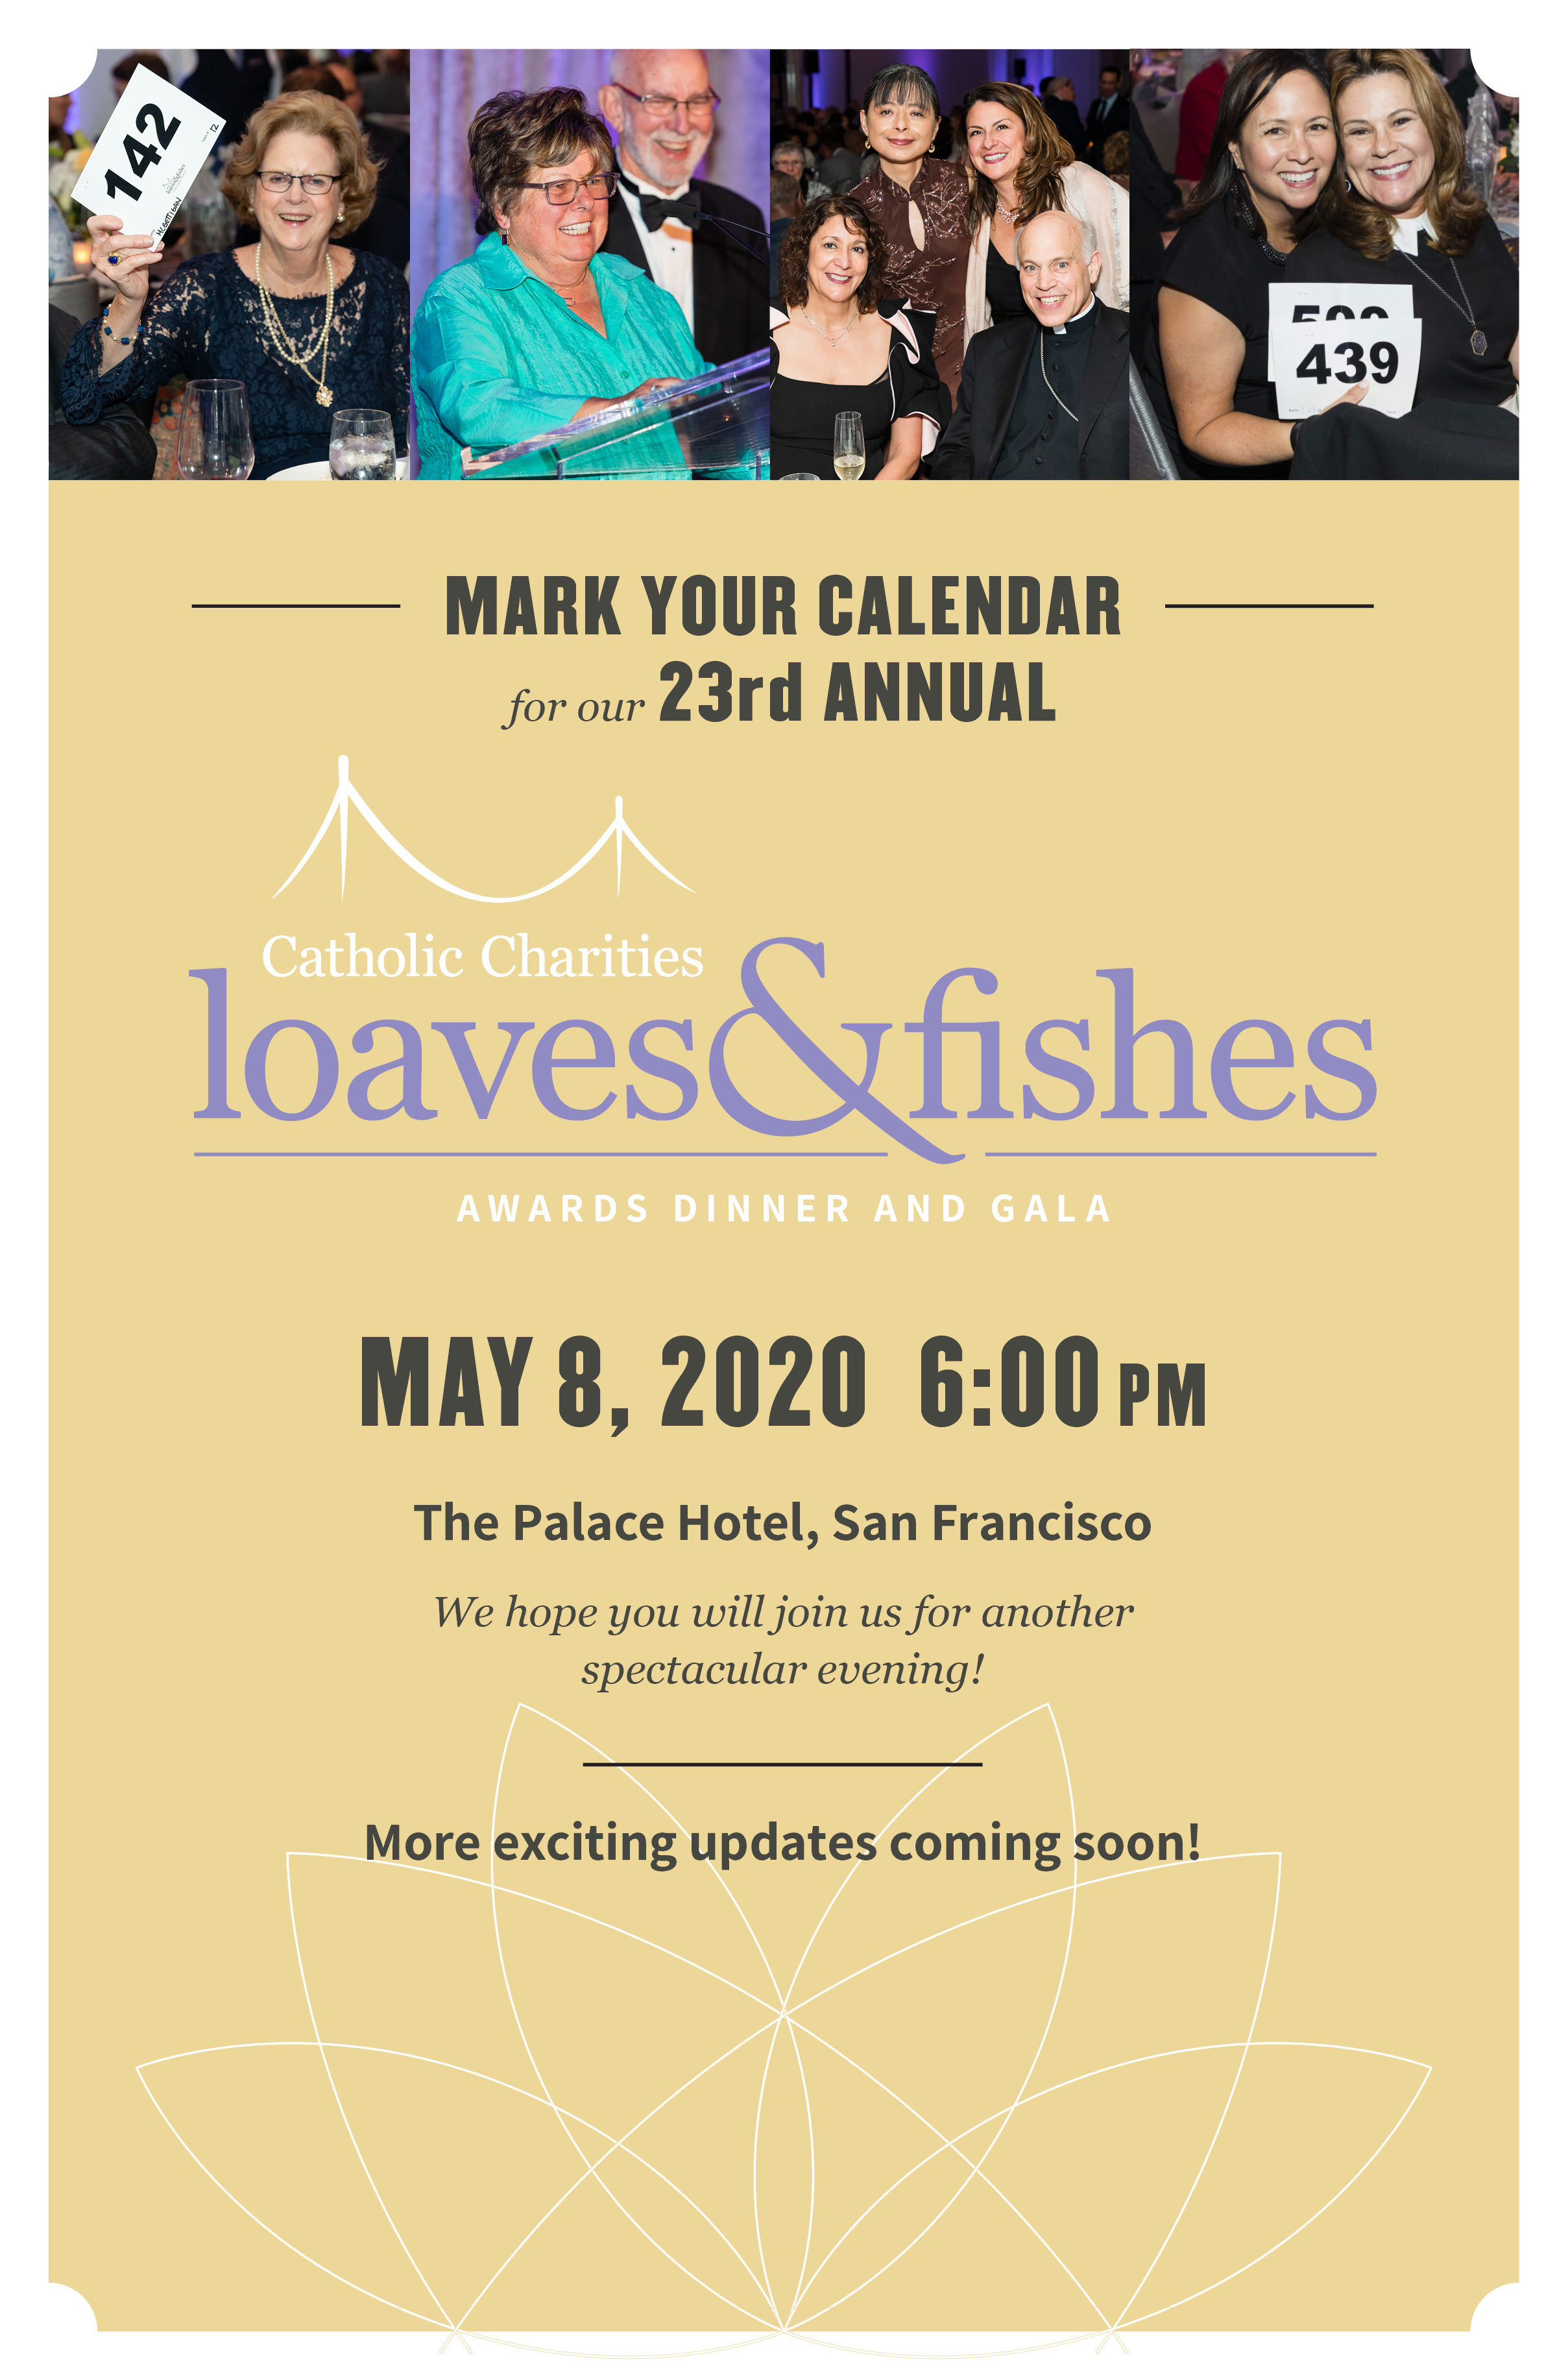 Catholic Charities | Loaves & Fishes Dinner and Awards Gala 2019